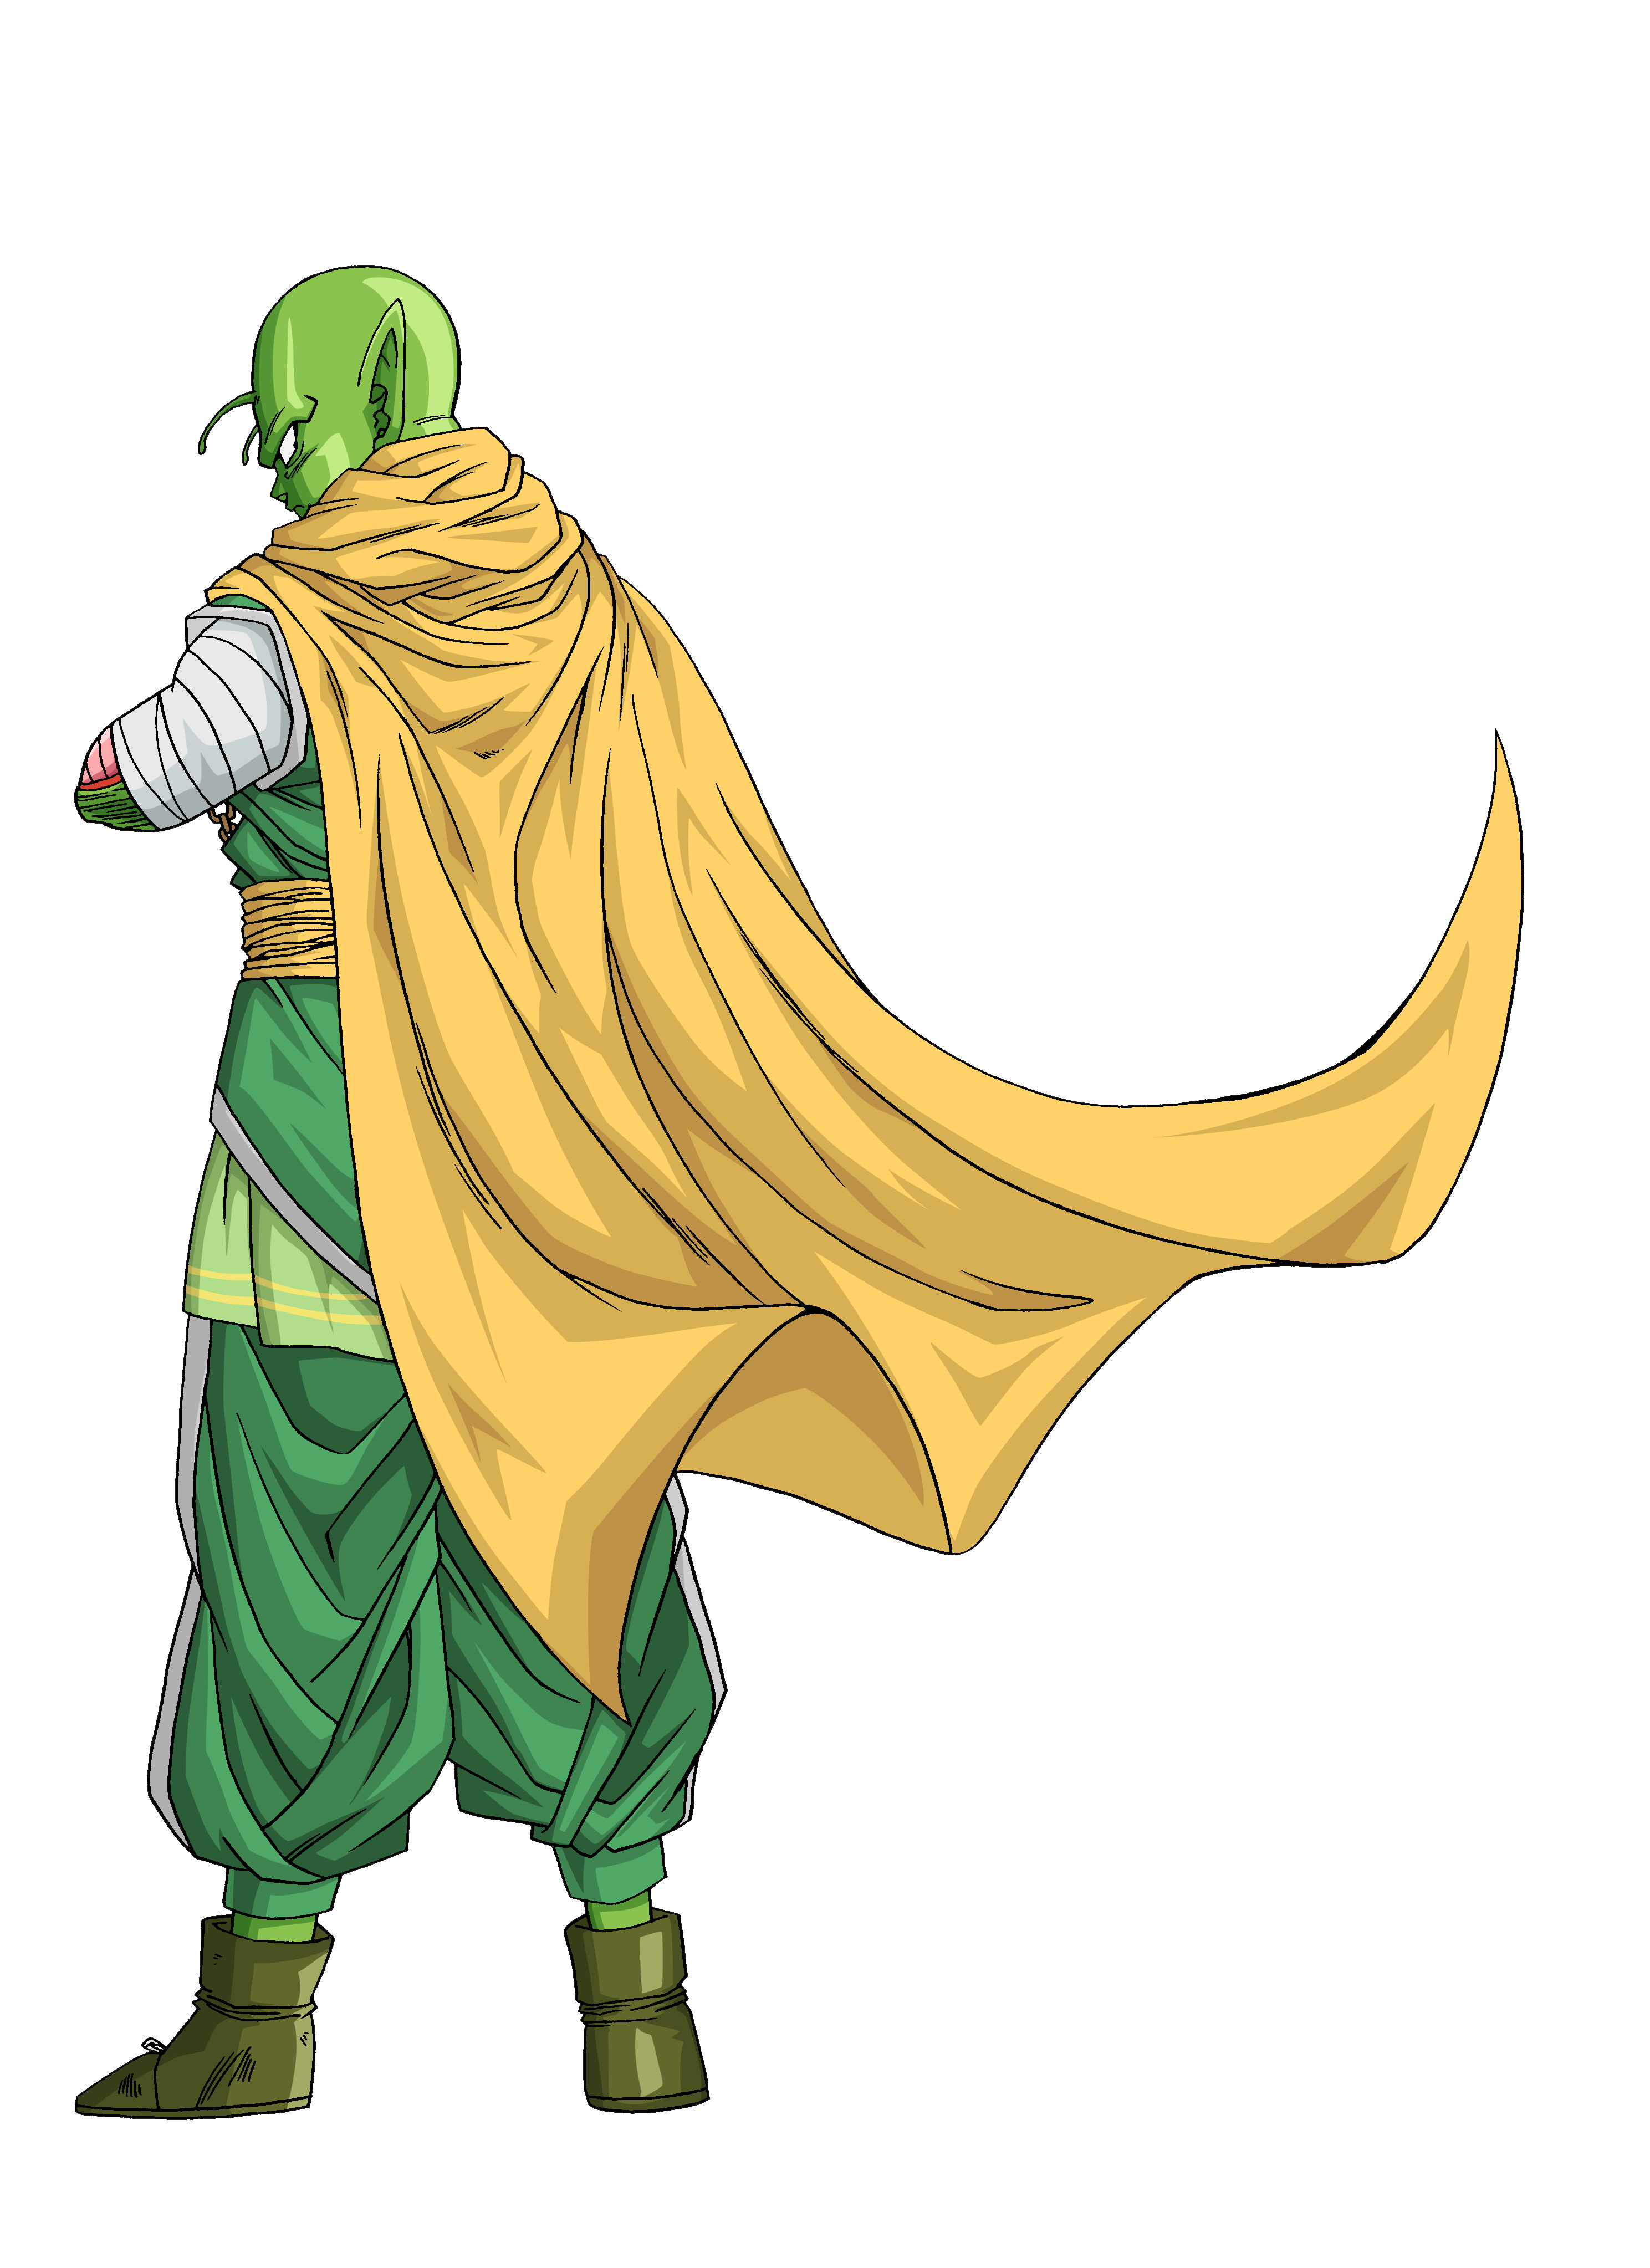 Namekiean Warrior Render (Dragon Ball Xenoverse).png